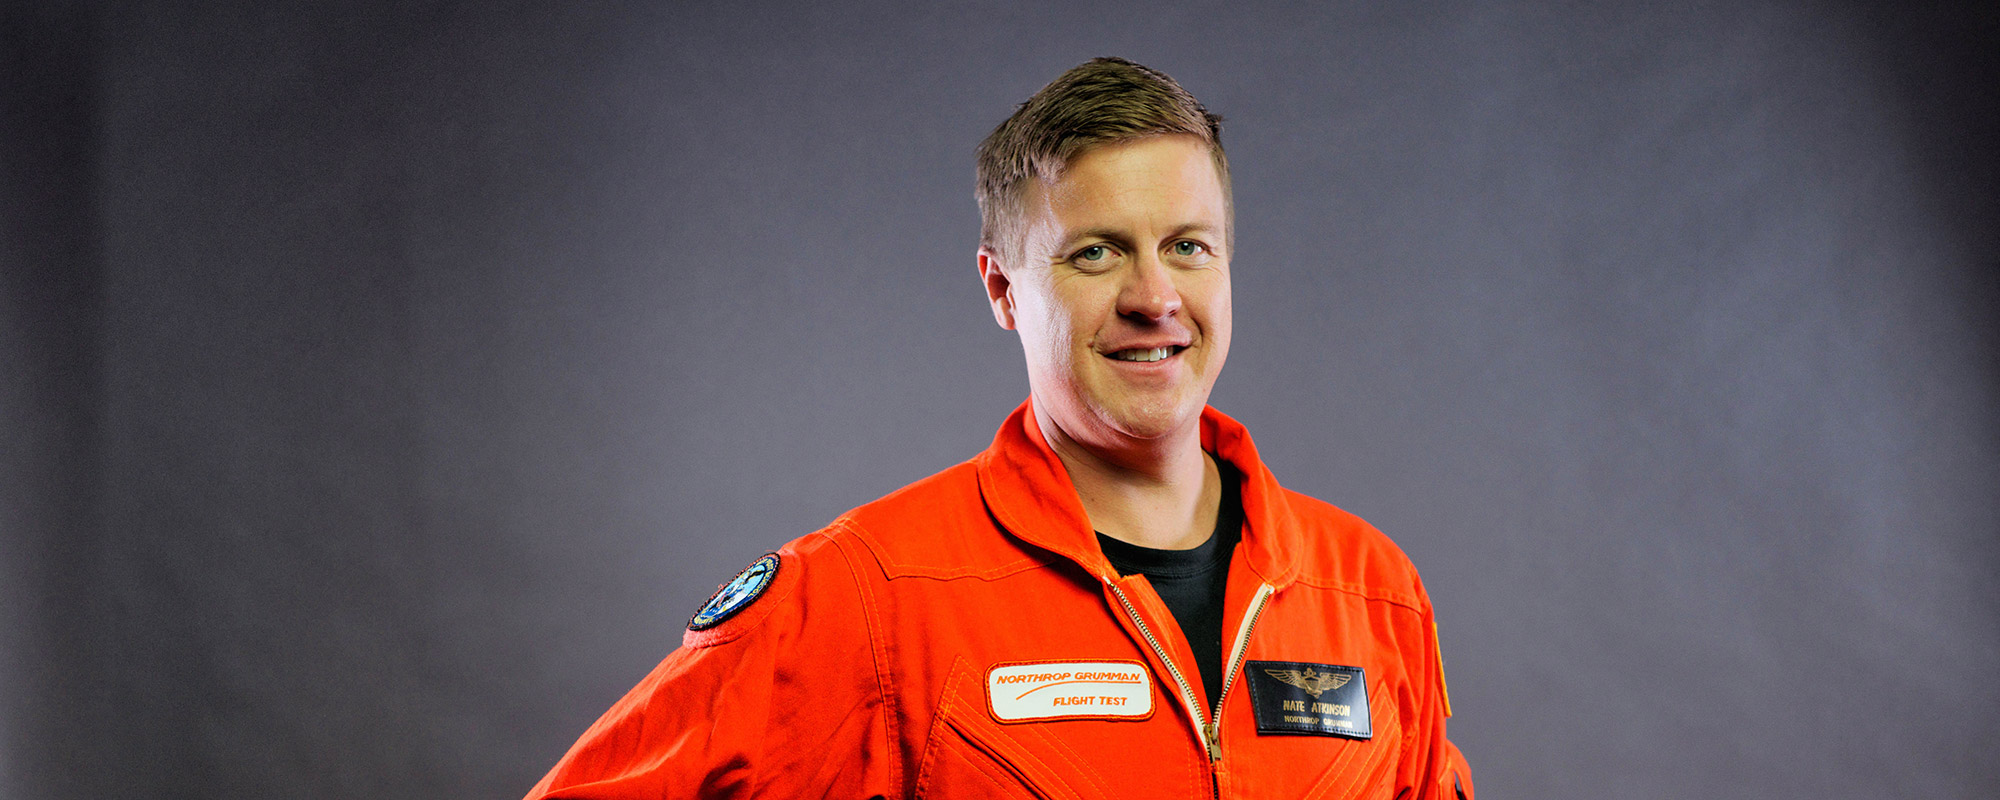 Headshot of man in orange flight suit